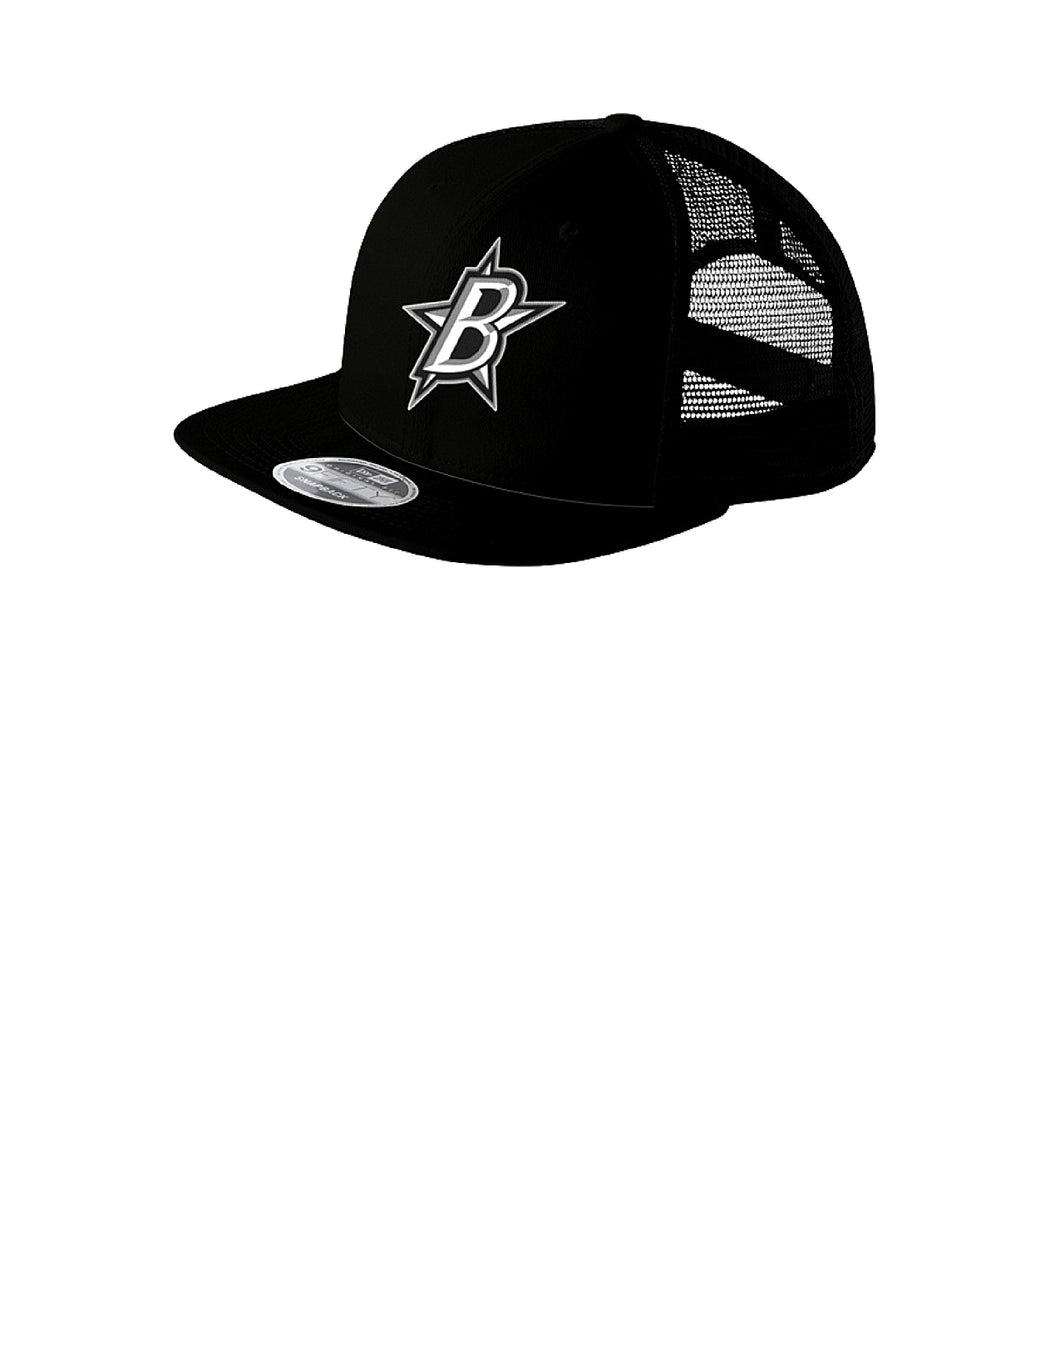 Black Stars New Era® Original Fit Flat Brim Snapback Trucker Cap Black With Black Stars